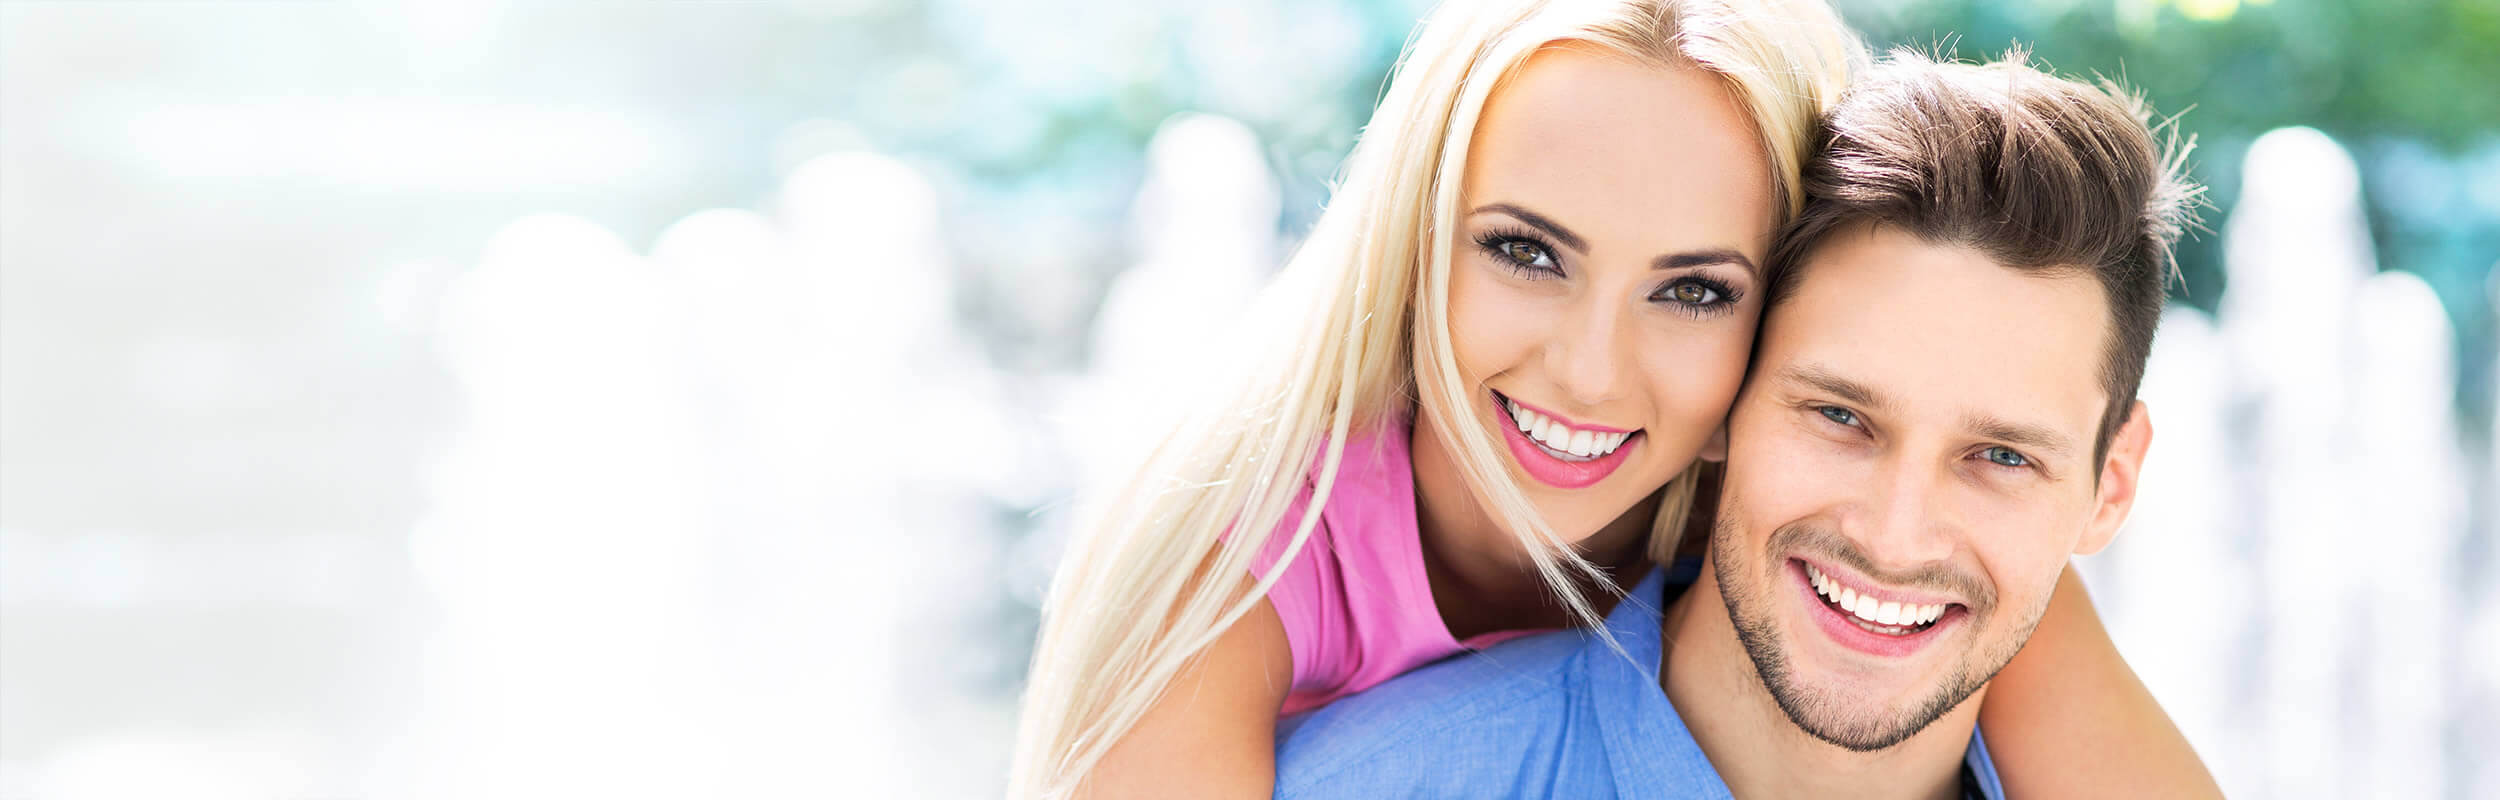 Teeth Whitening at Aura in Kingston and Wimbledon